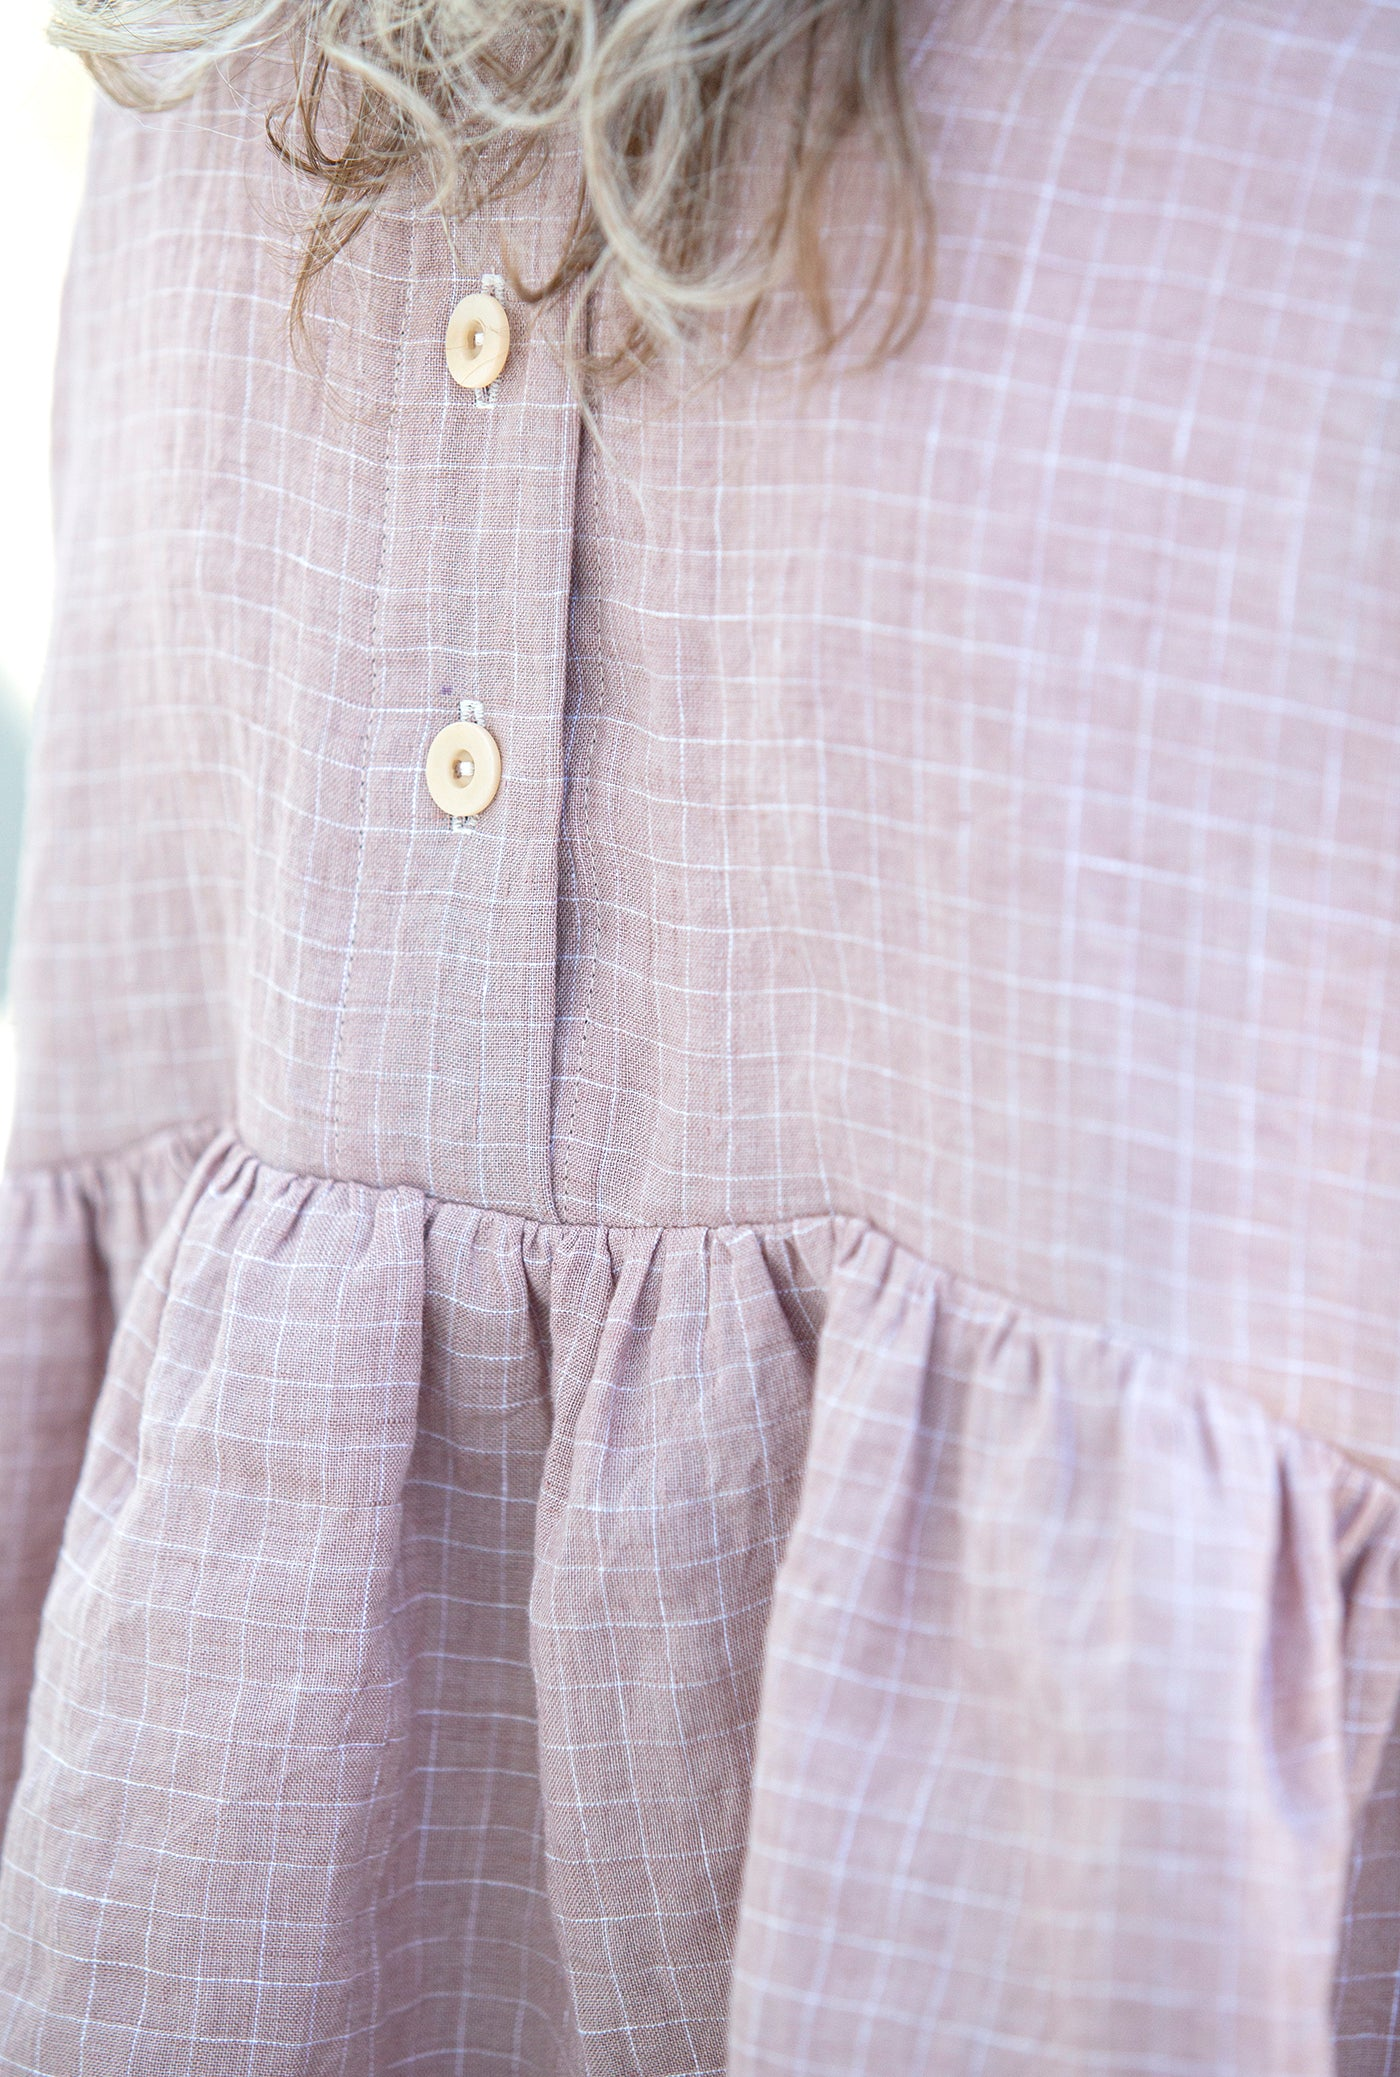 This is an up close photo of a pink shirt's ruffles and button closures